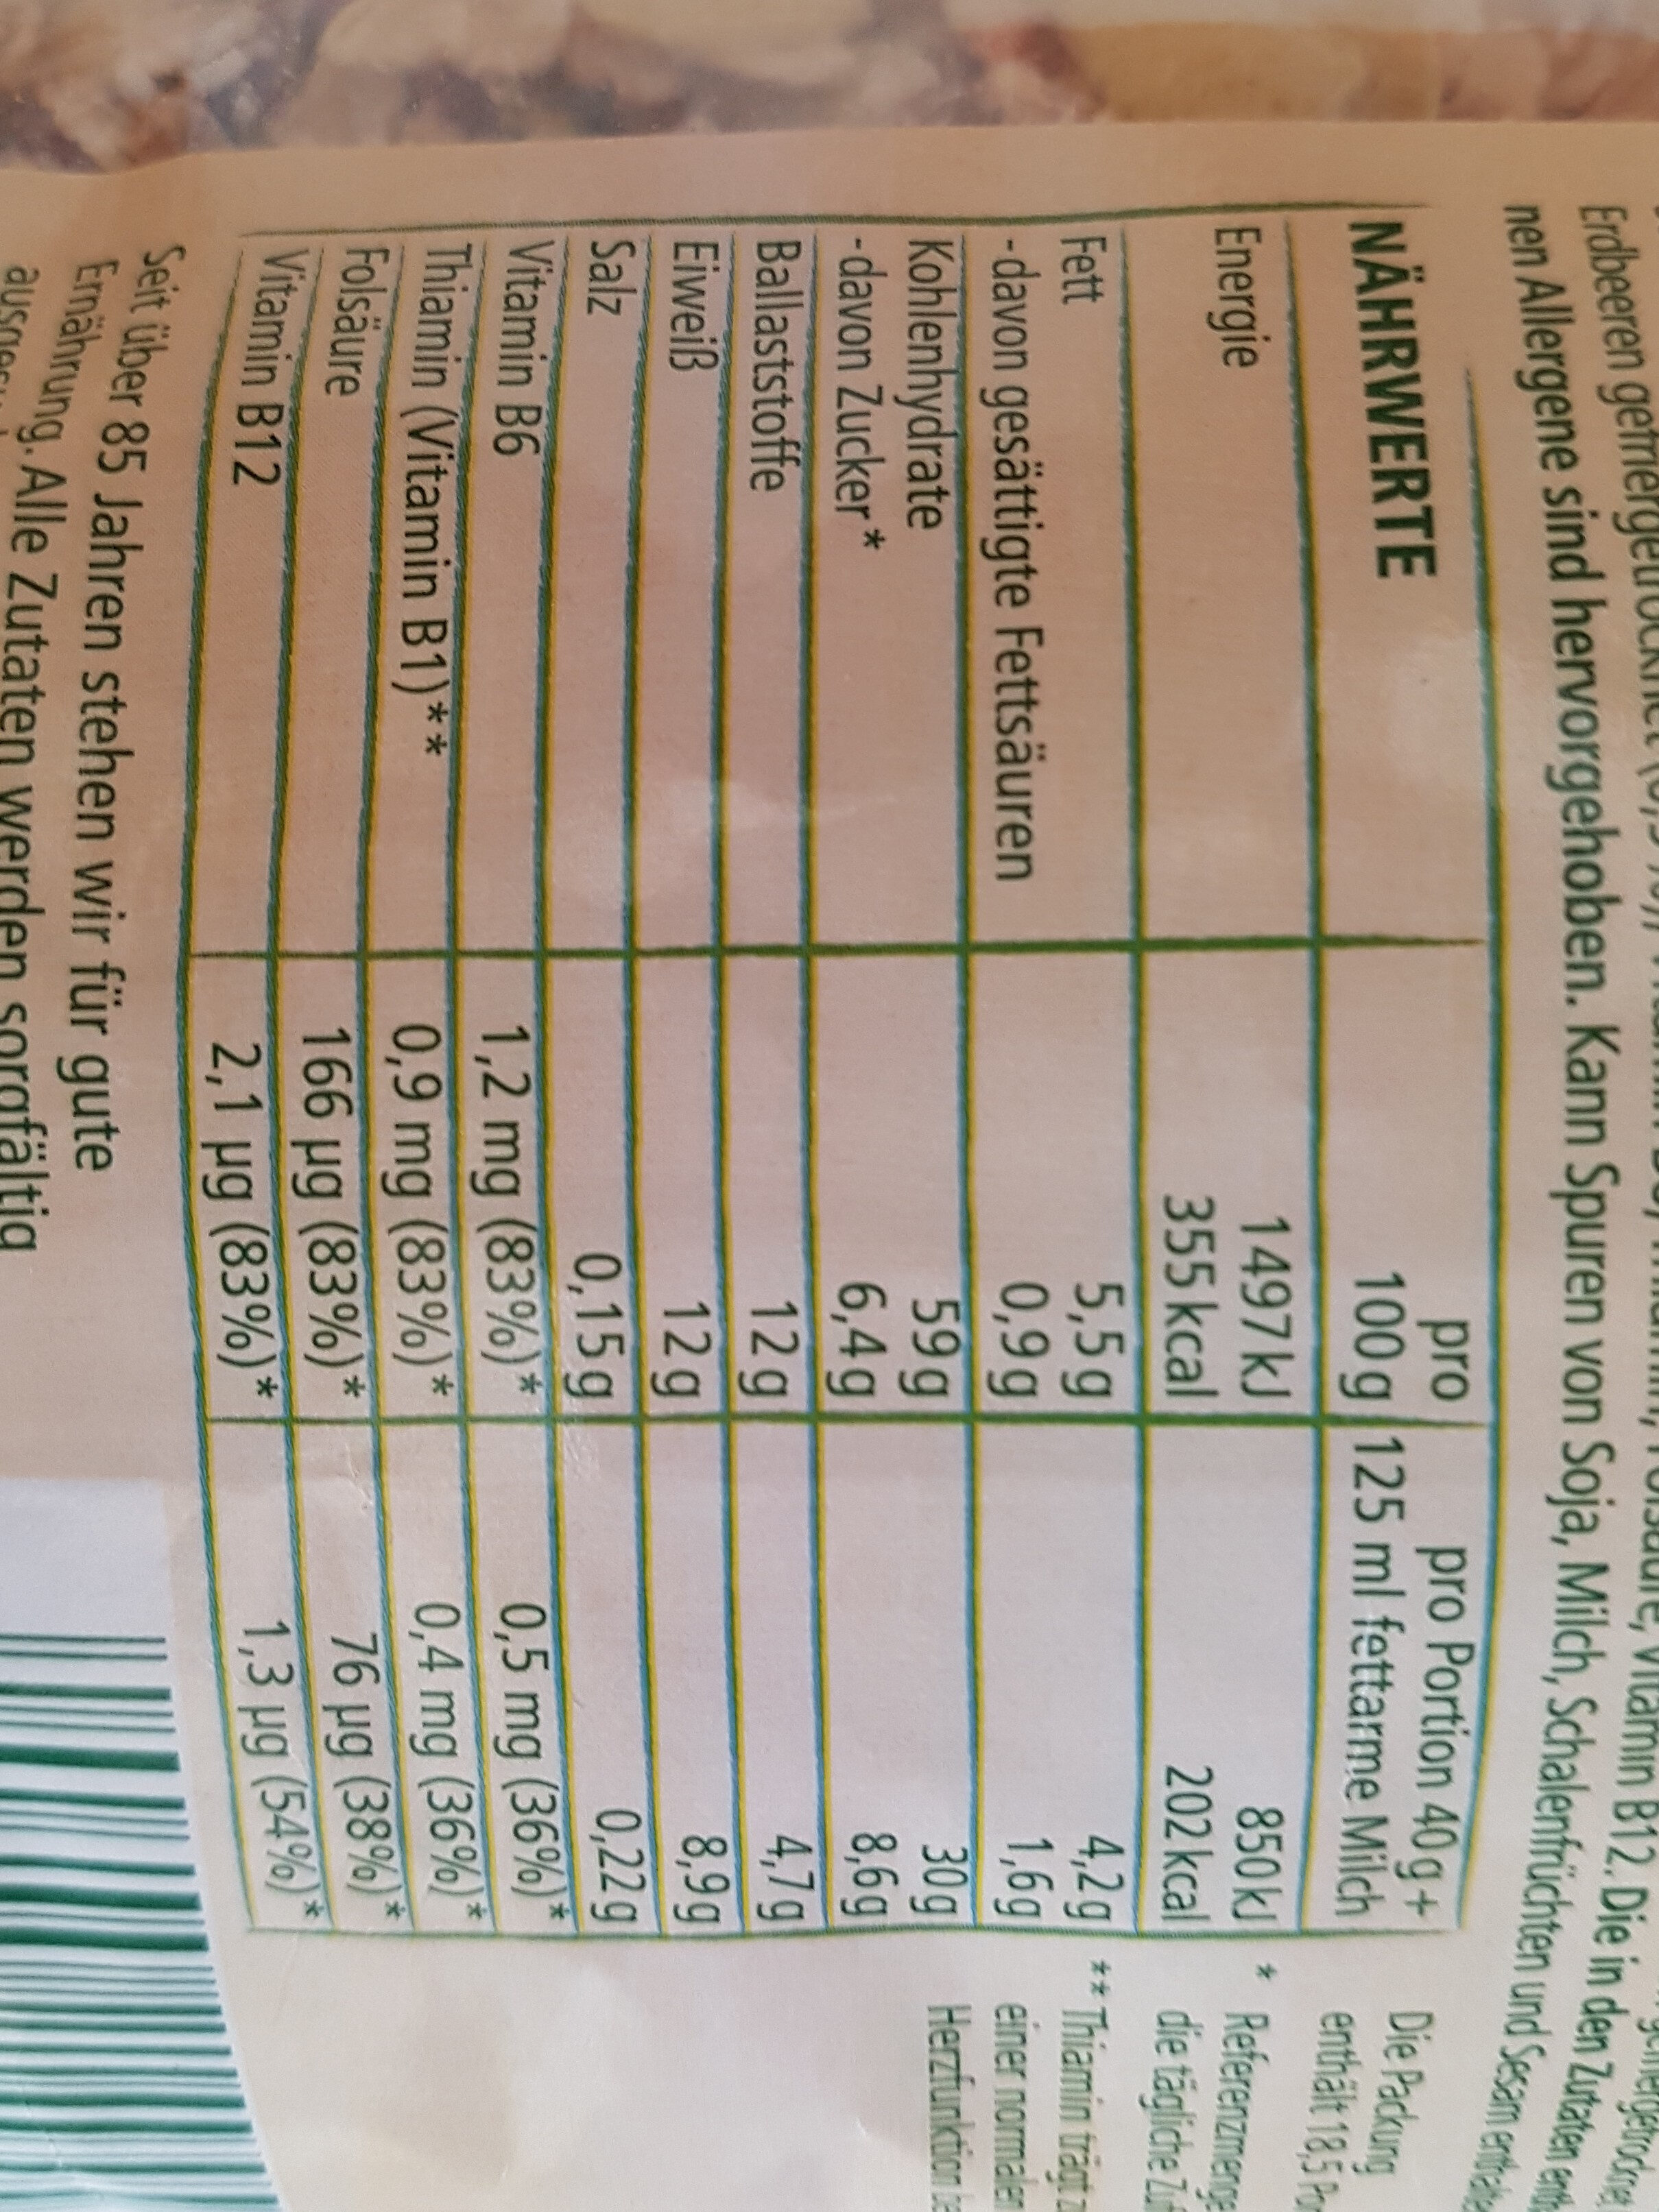 Herzensangelegenheiten - Nutrition facts - de